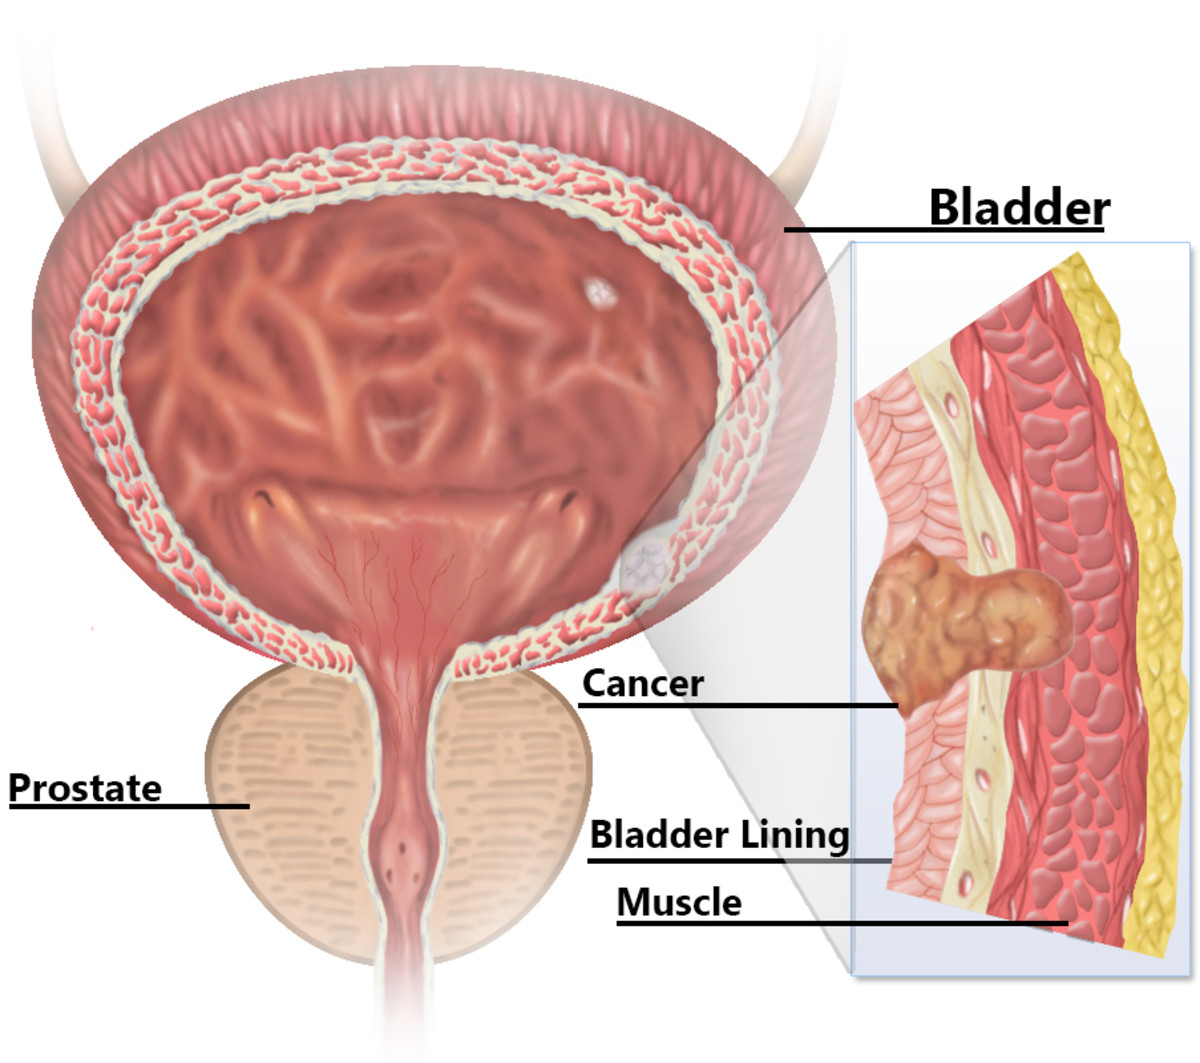 Diagram of cancer in the bladder lining.